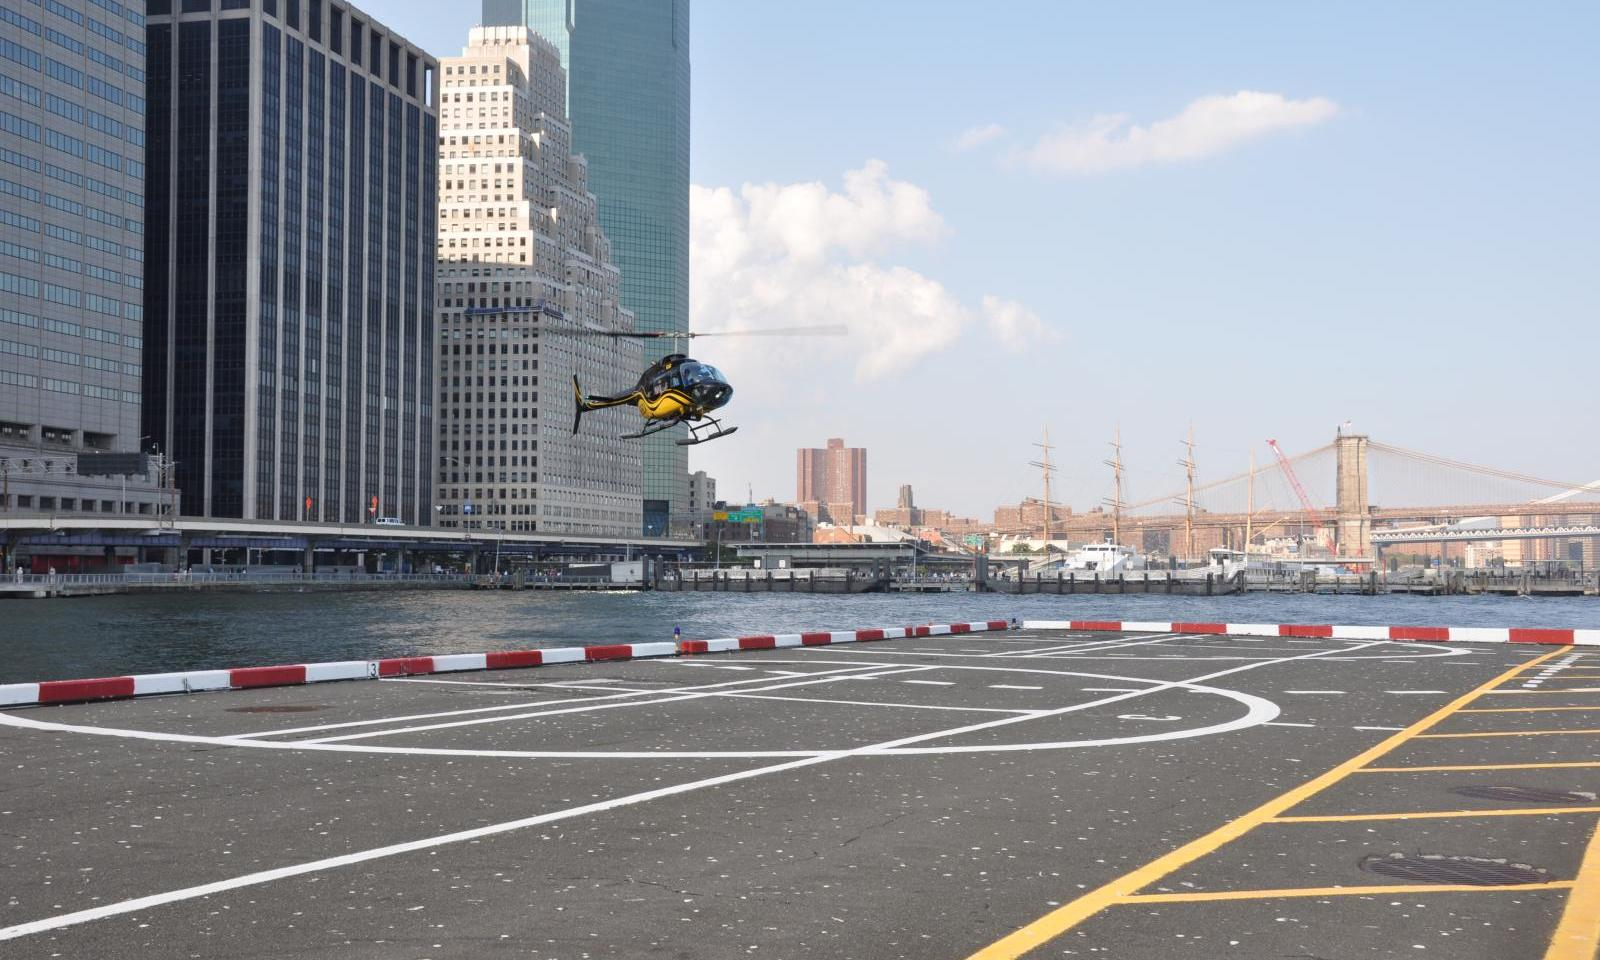 helicopter rides new york with The Best Helicopter Ride New York City on The Best Helicopter Ride New York City also Jerry Seinfeld moreover 356242 together with Universal Orlando Resort furthermore Kingkong photos.